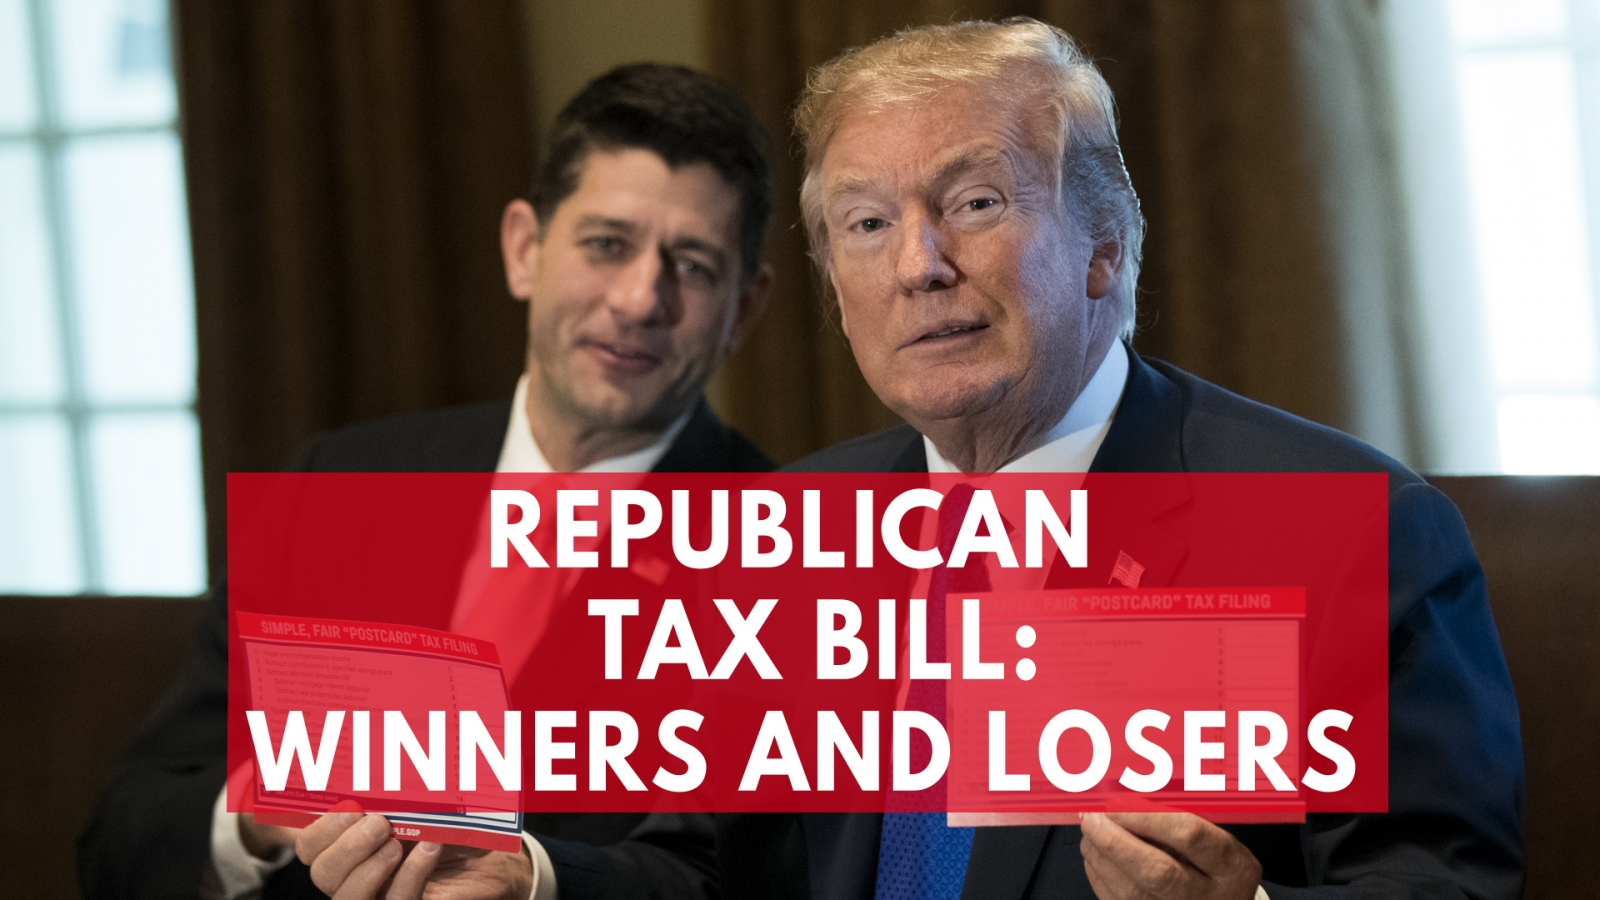 Republican Tax Bill Winners And Losers